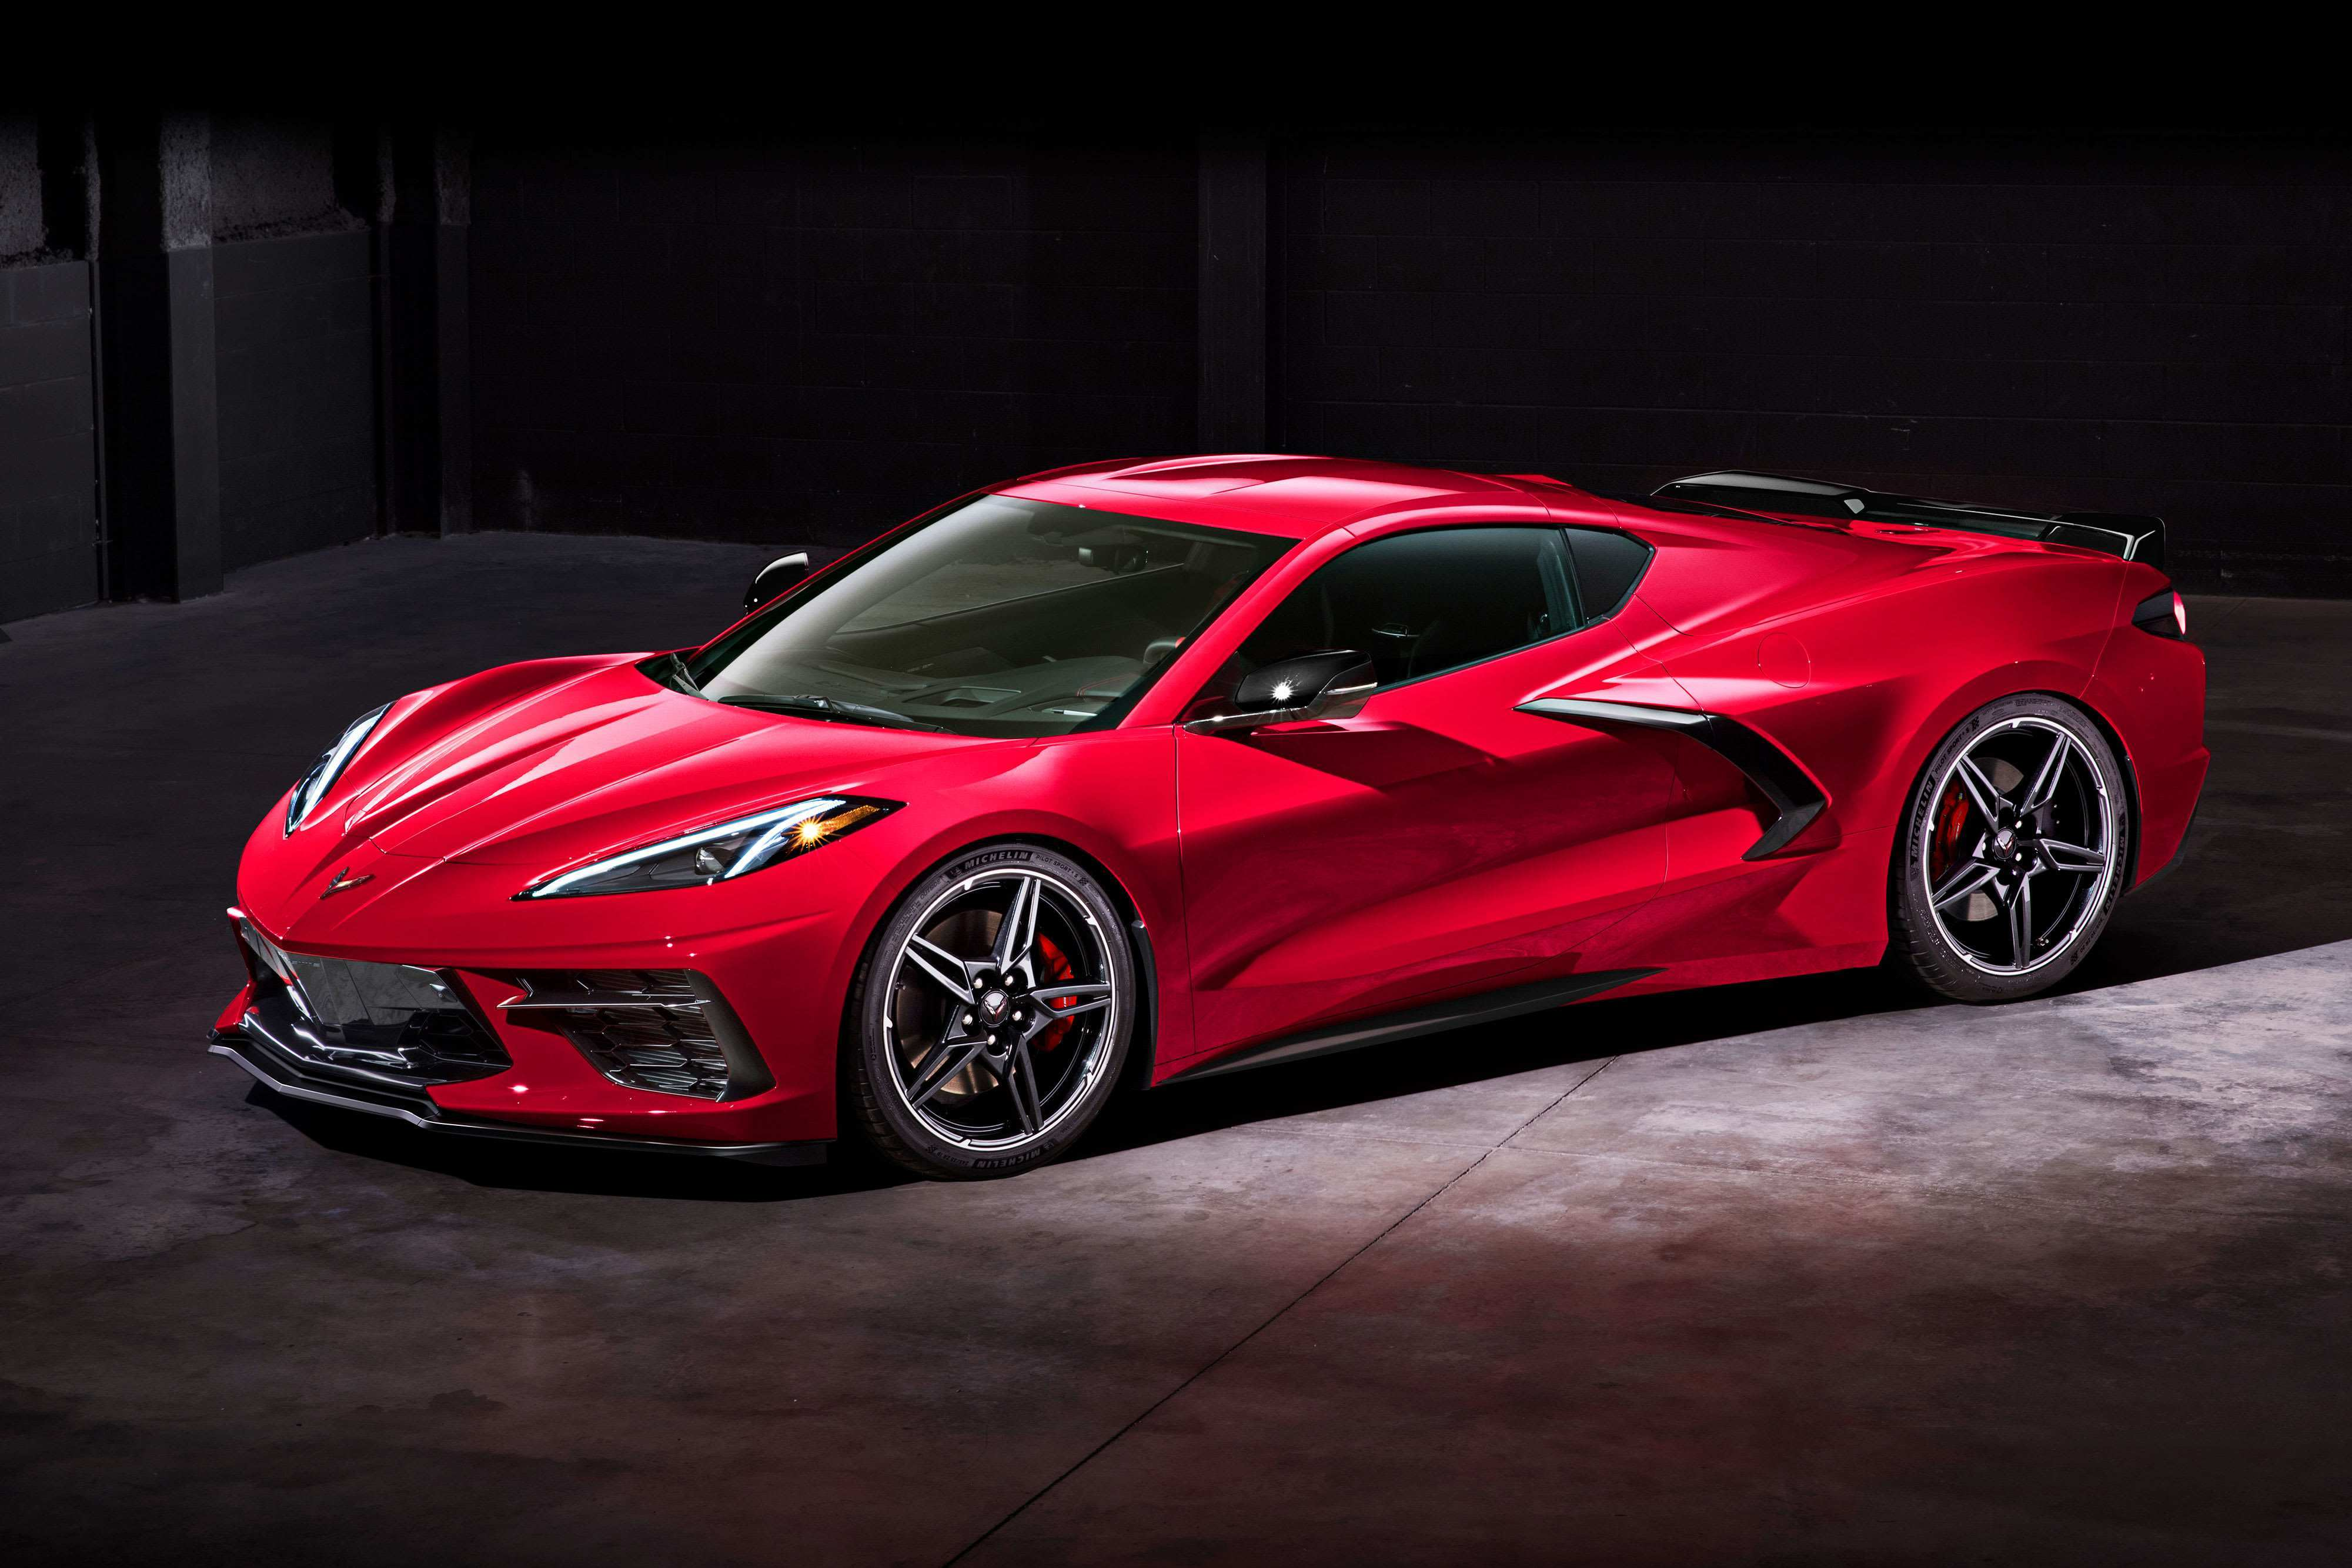 11 New 2020 Chevrolet Corvette Zo6 Speed Test